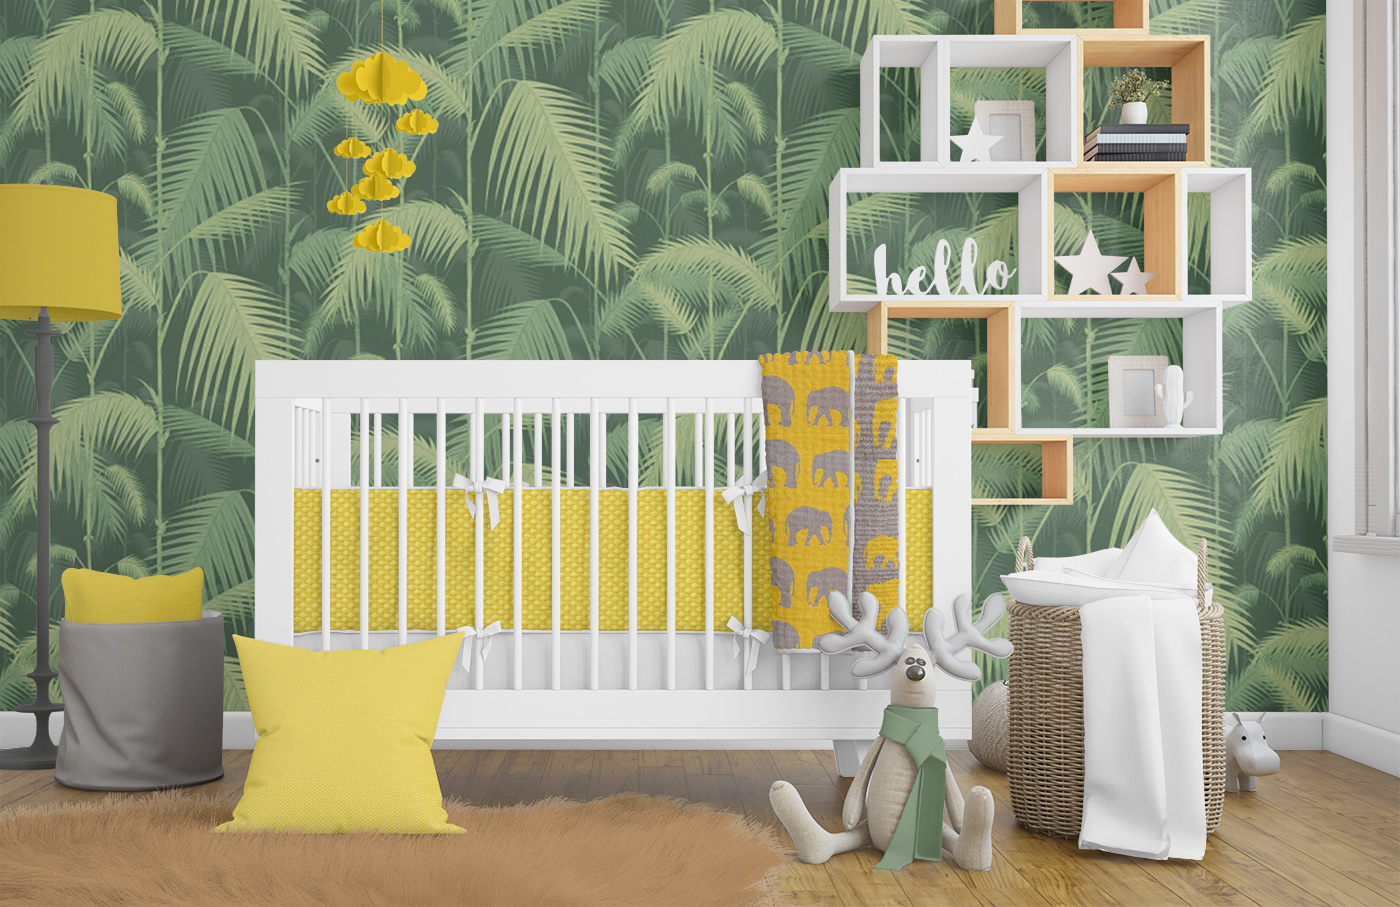 Jungle Nursery Theme Decor